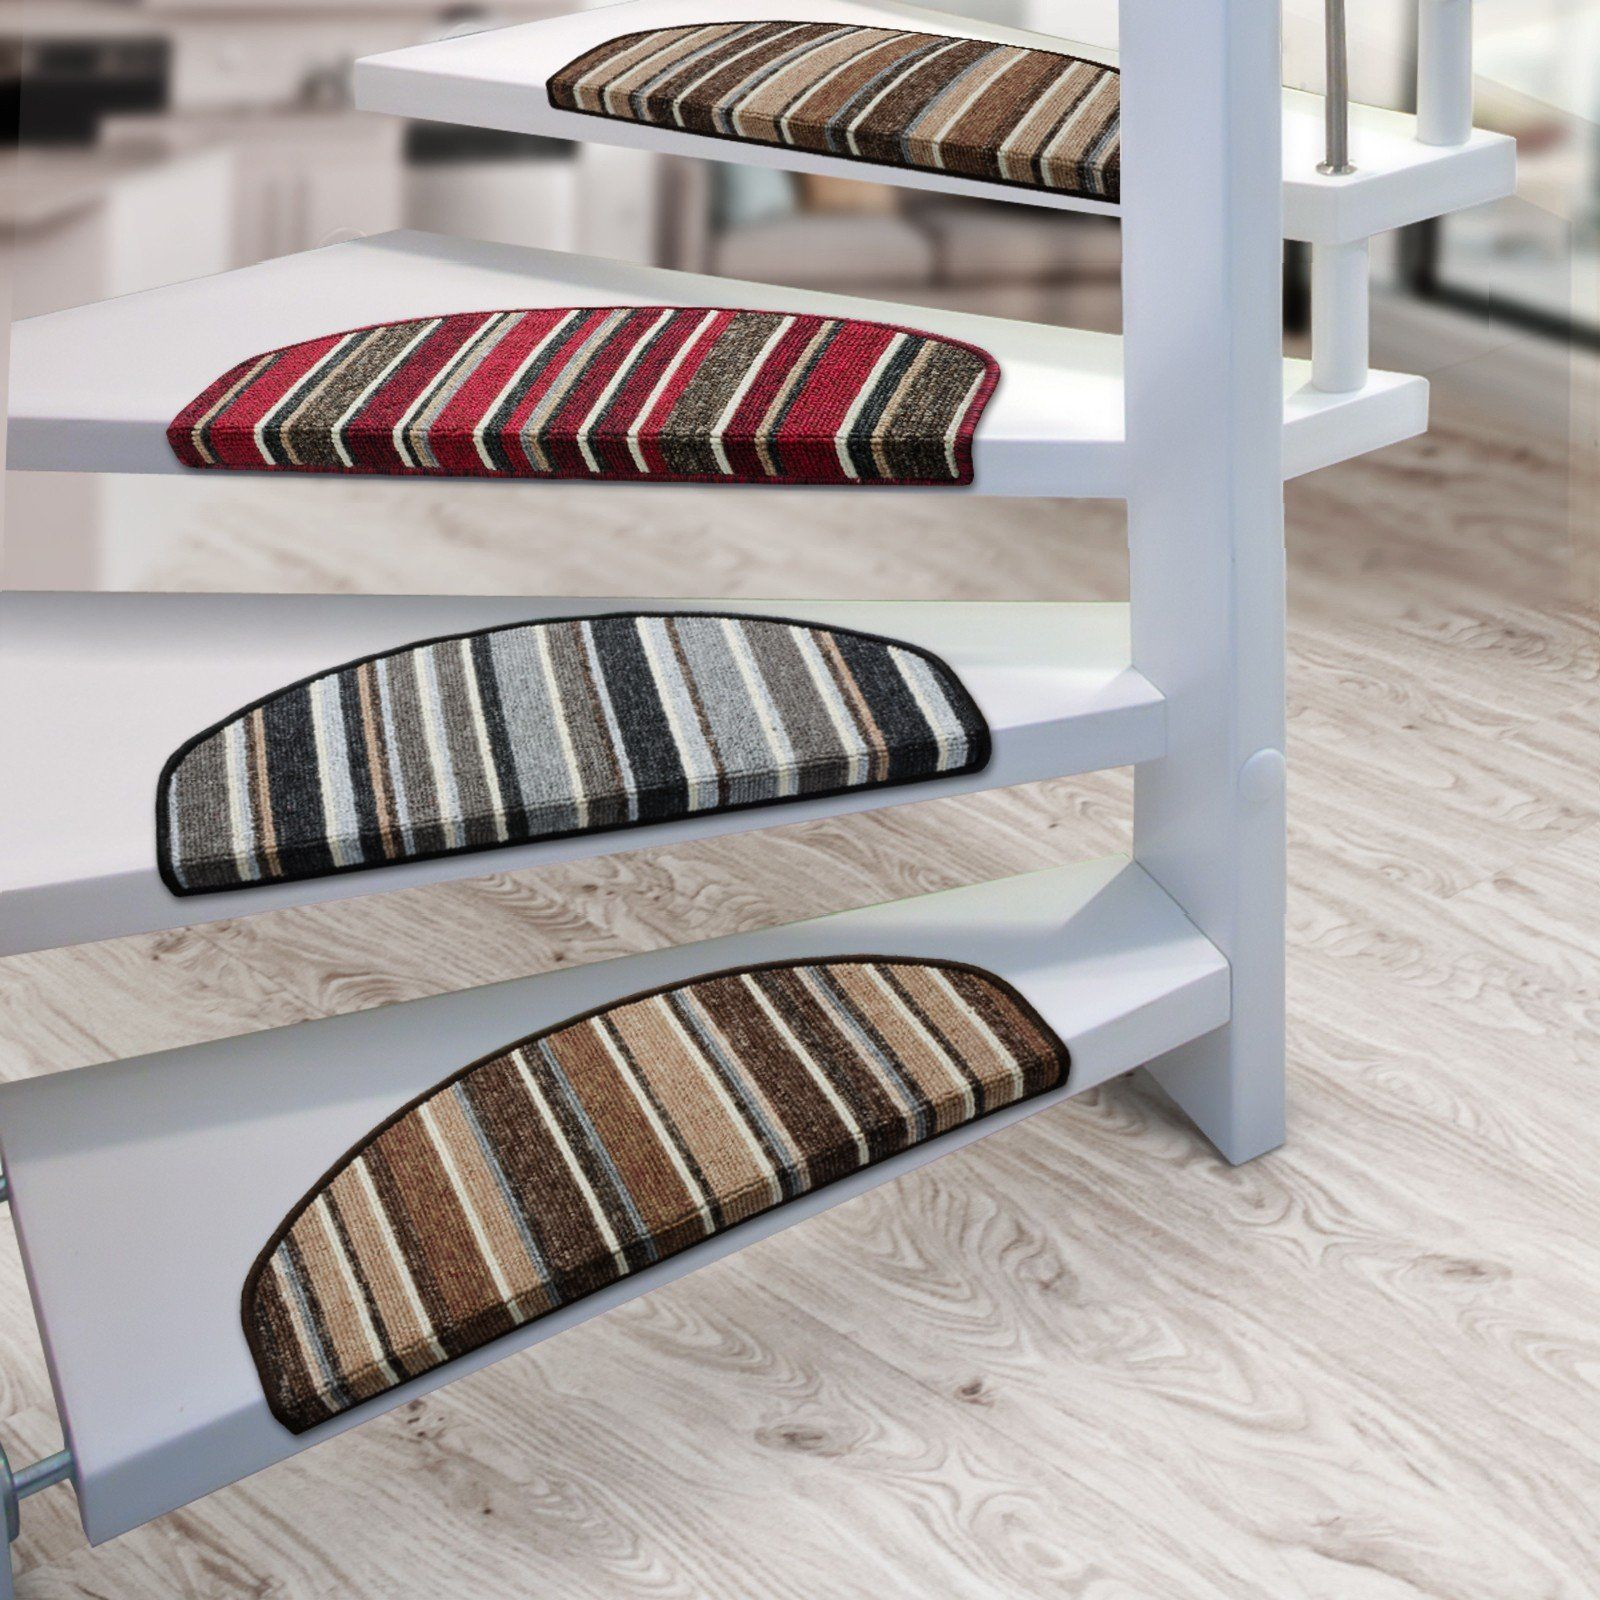 Incroyable Stairs Mats Broadway   Available In 3 Different Designs The High Quality  And Robustness Of These Stair Mats Will Make Your Steps Safe And Protect  Them From ...